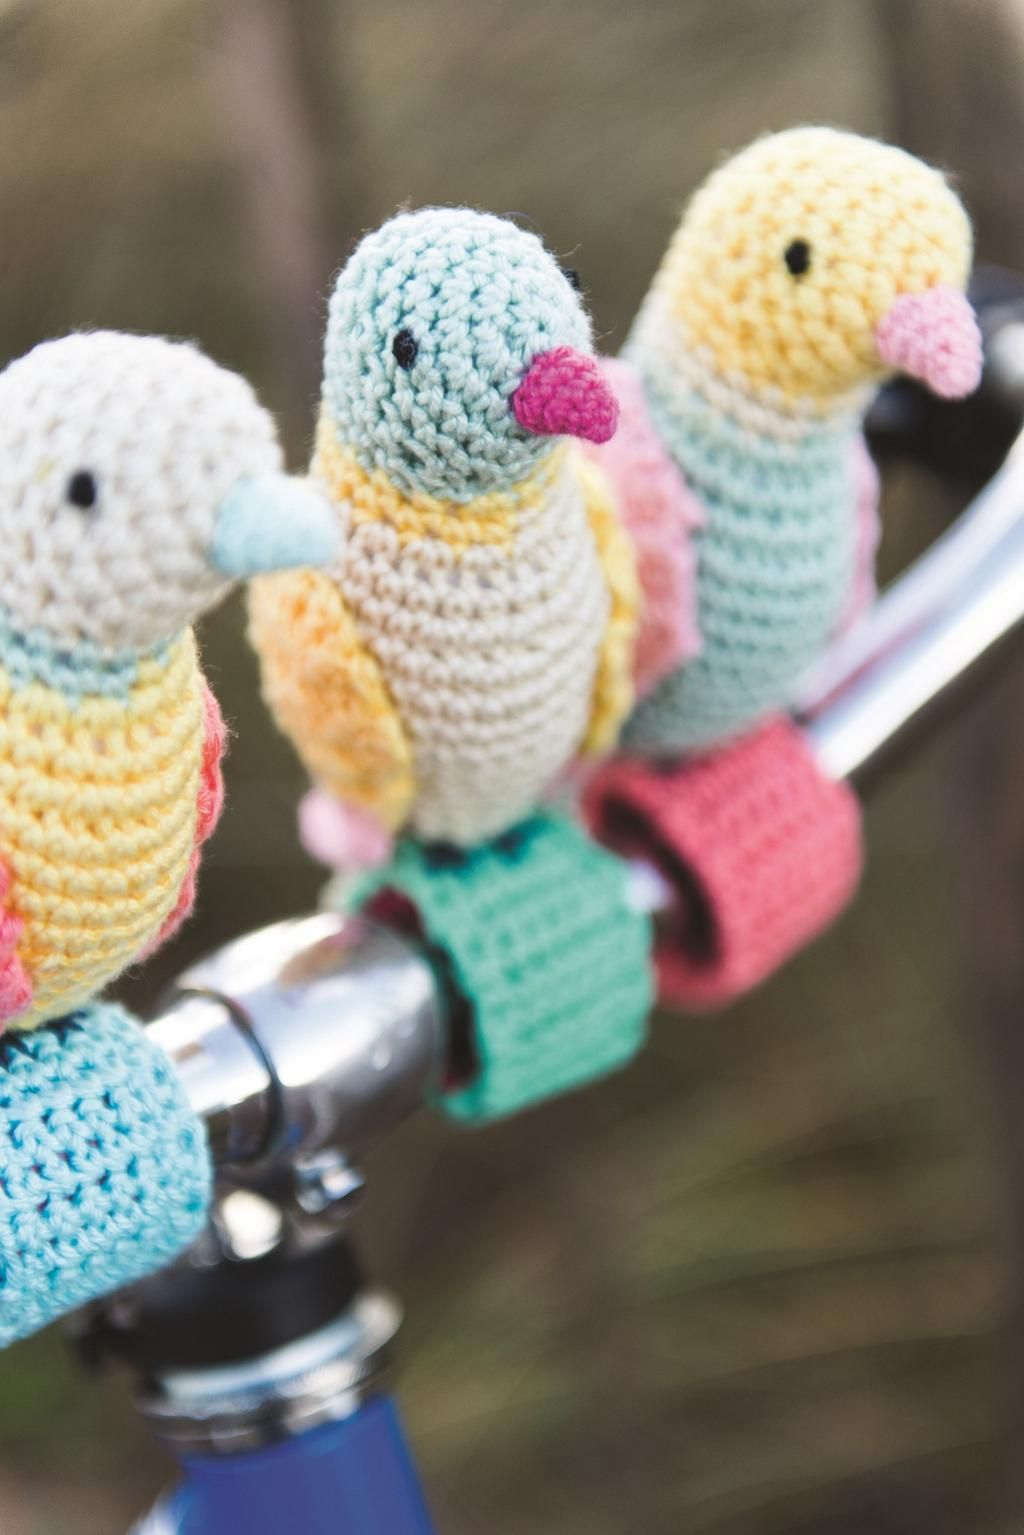 'Tweet' yourself to new book Craft Bomb Your Bike!   http://www.amazon.co.uk/Craft-Bomb-Your-Bike-Makes/dp/1446304809